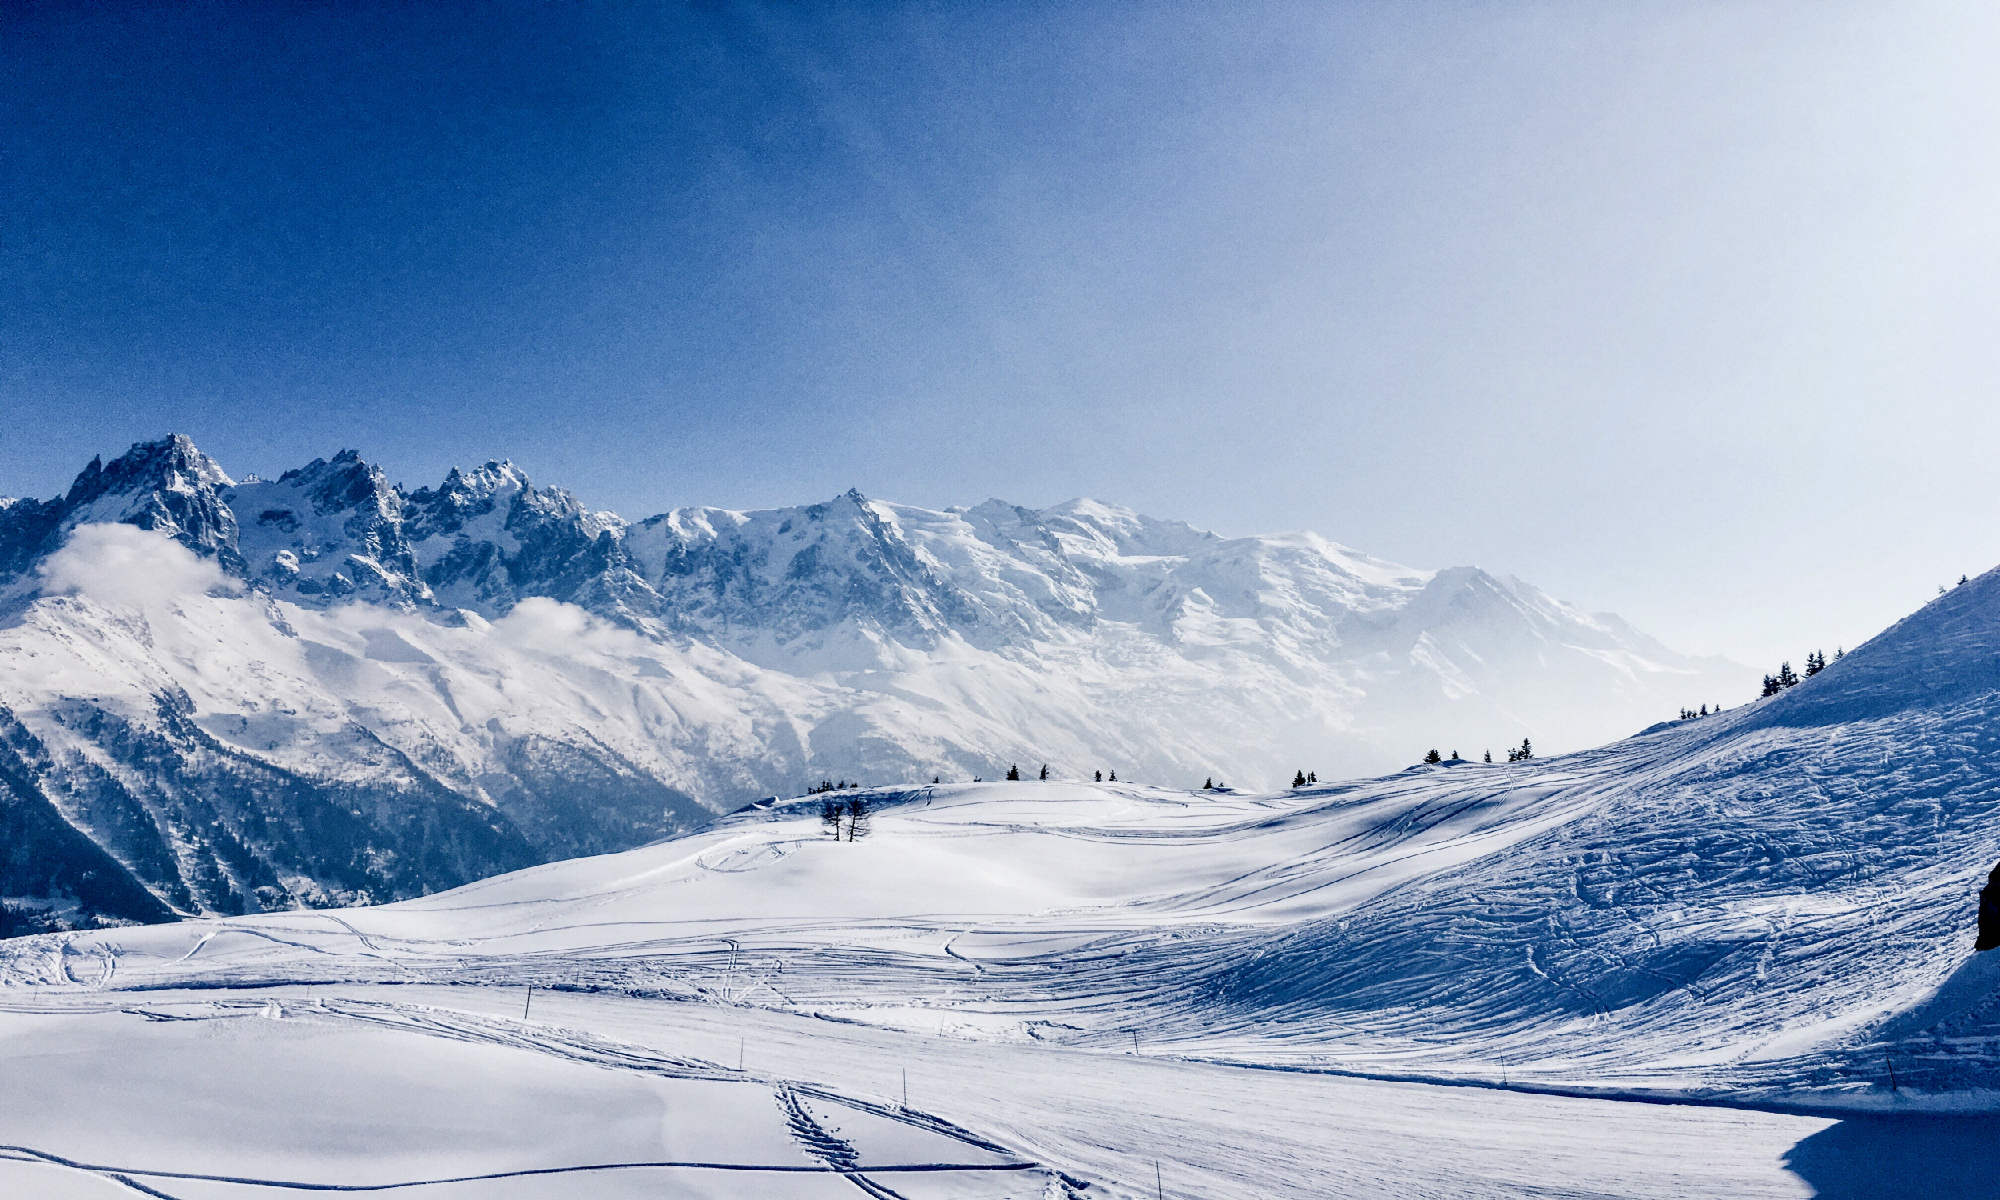 A stunning snowscape in Chamonix.